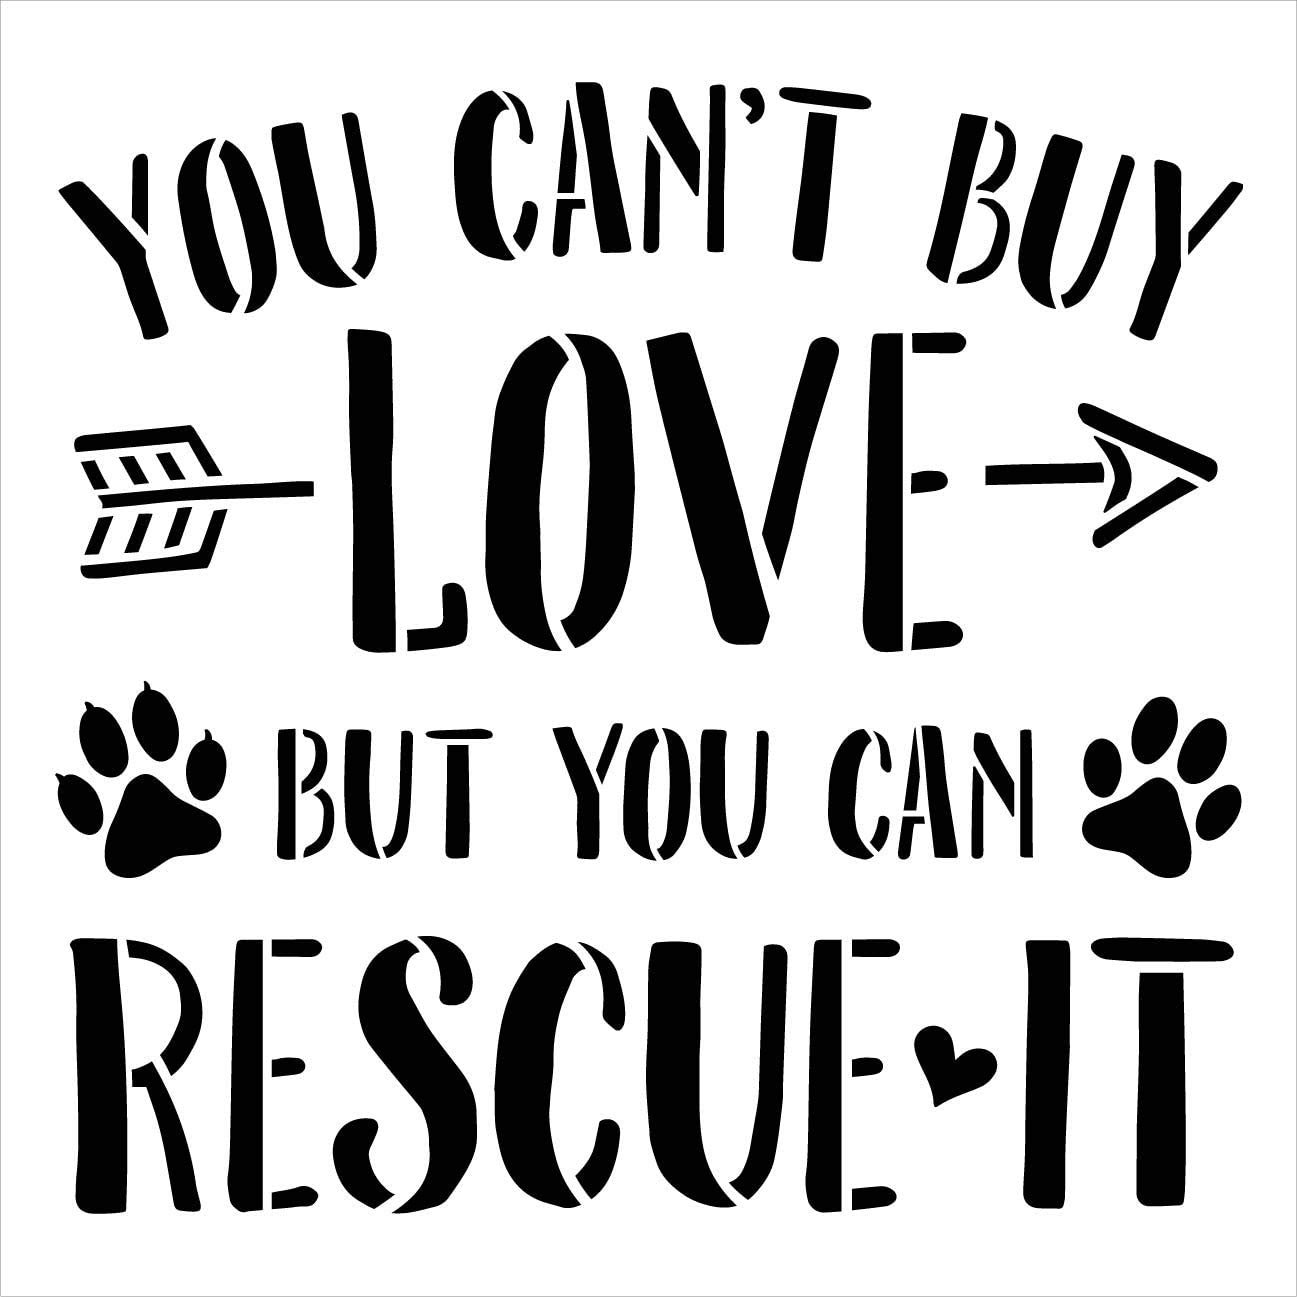 Cant Buy Love - Rescue It Stencil by StudioR12 | DIY Dog Cat Lover Home Decor Gift | Craft & Paint Wood Sign | Reusable Mylar Template | Select Size